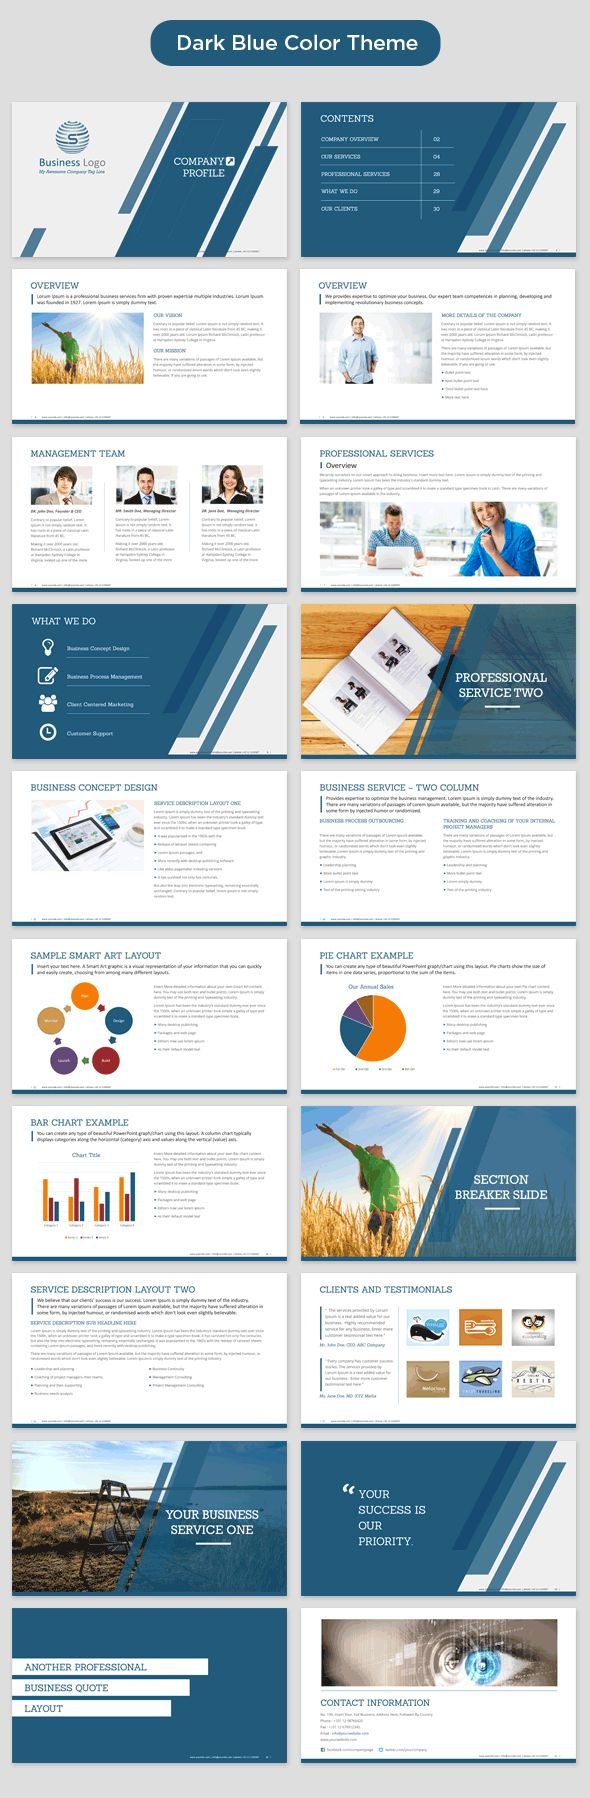 Best 25 company presentation ideas on pinterest data company profile powerpoint template dark blue preview toneelgroepblik Choice Image